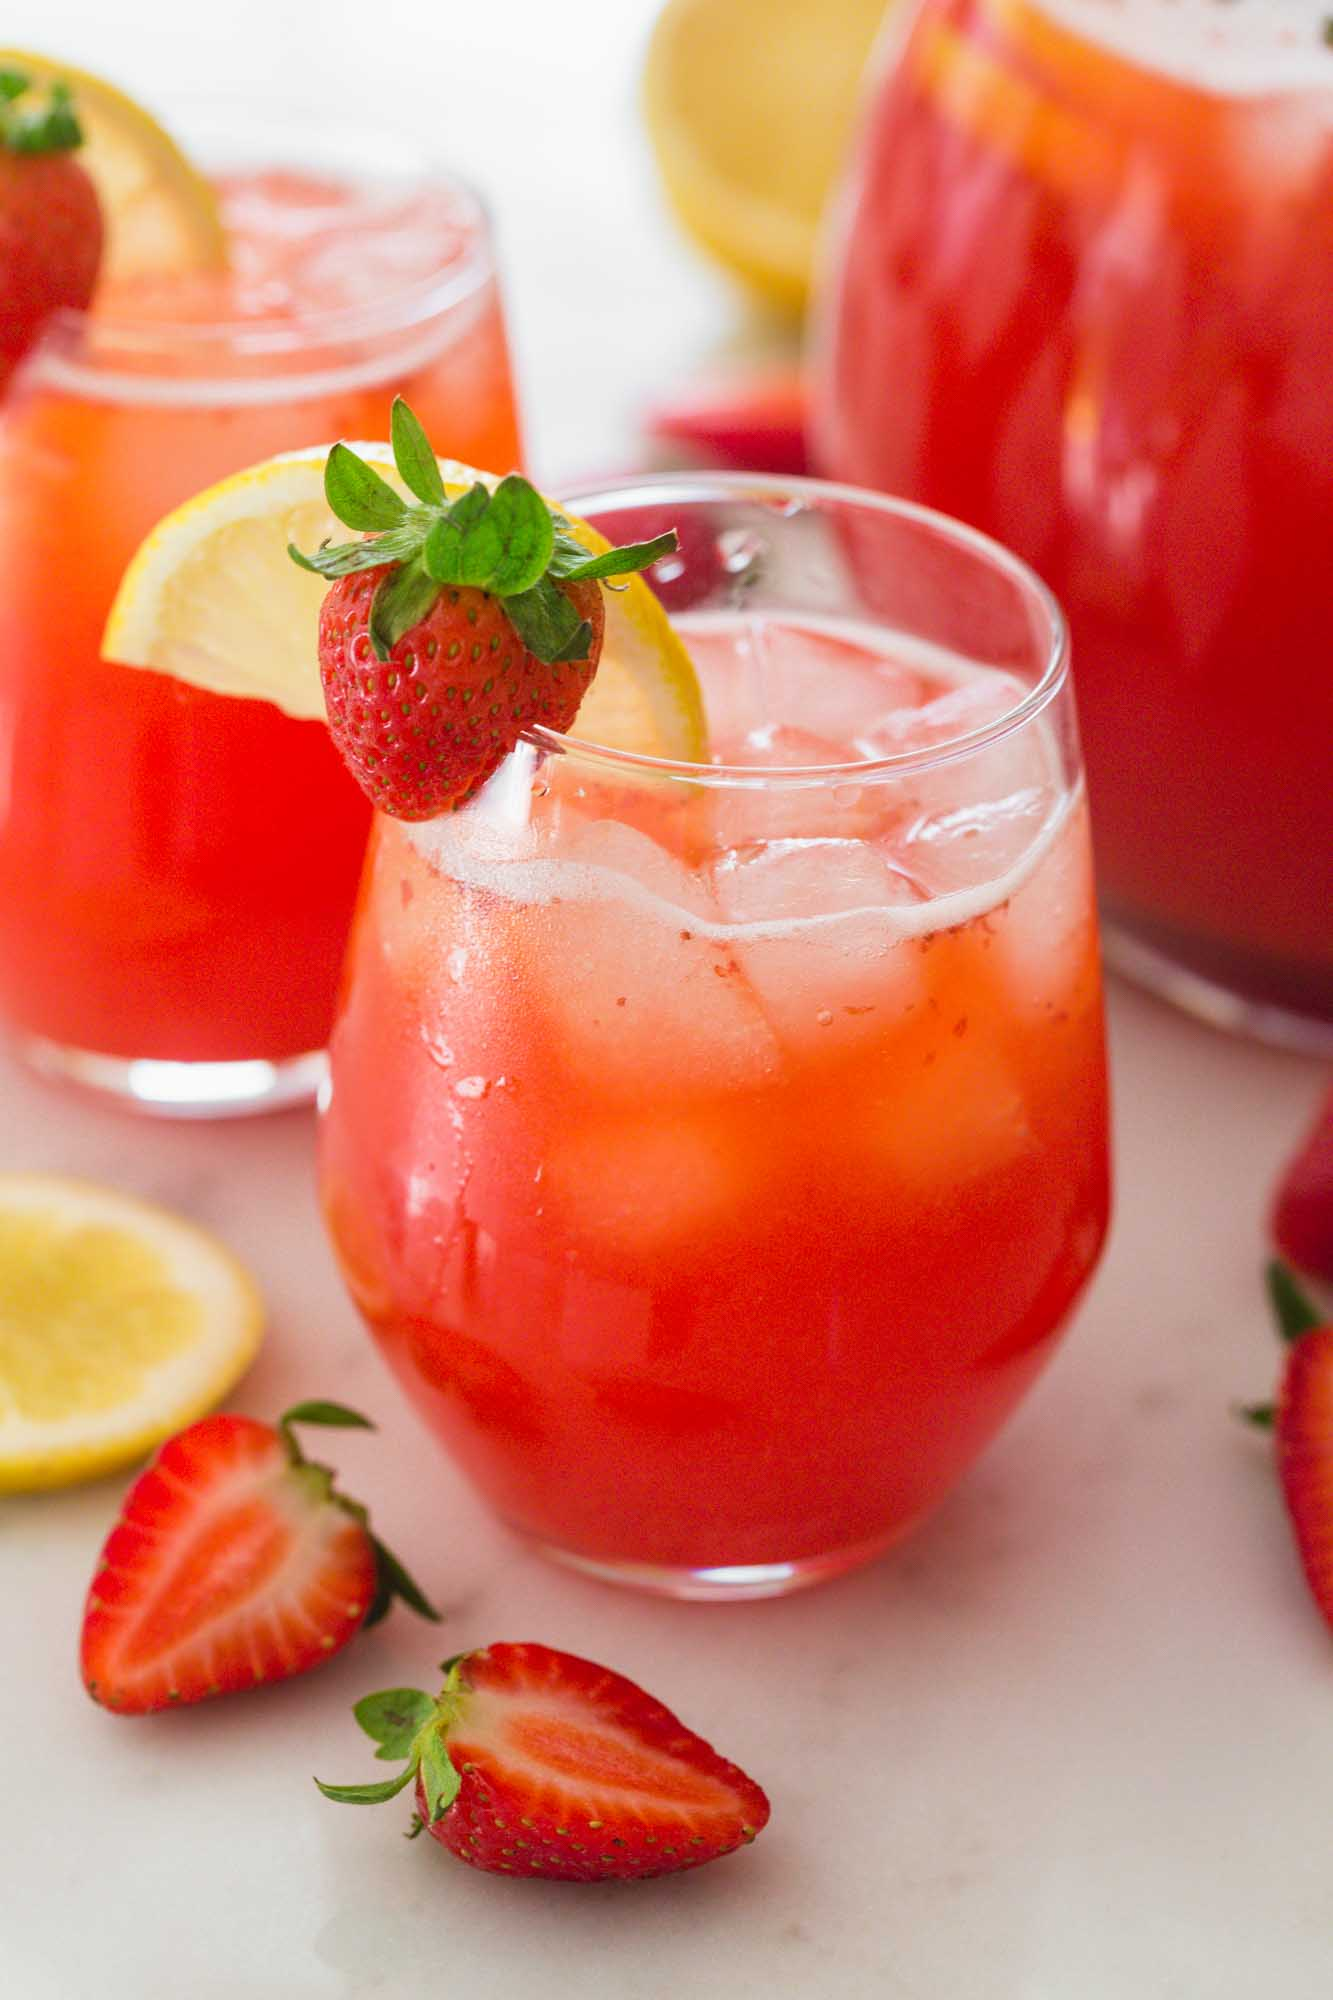 Chilled strawberry lemonade served with ice in a glass